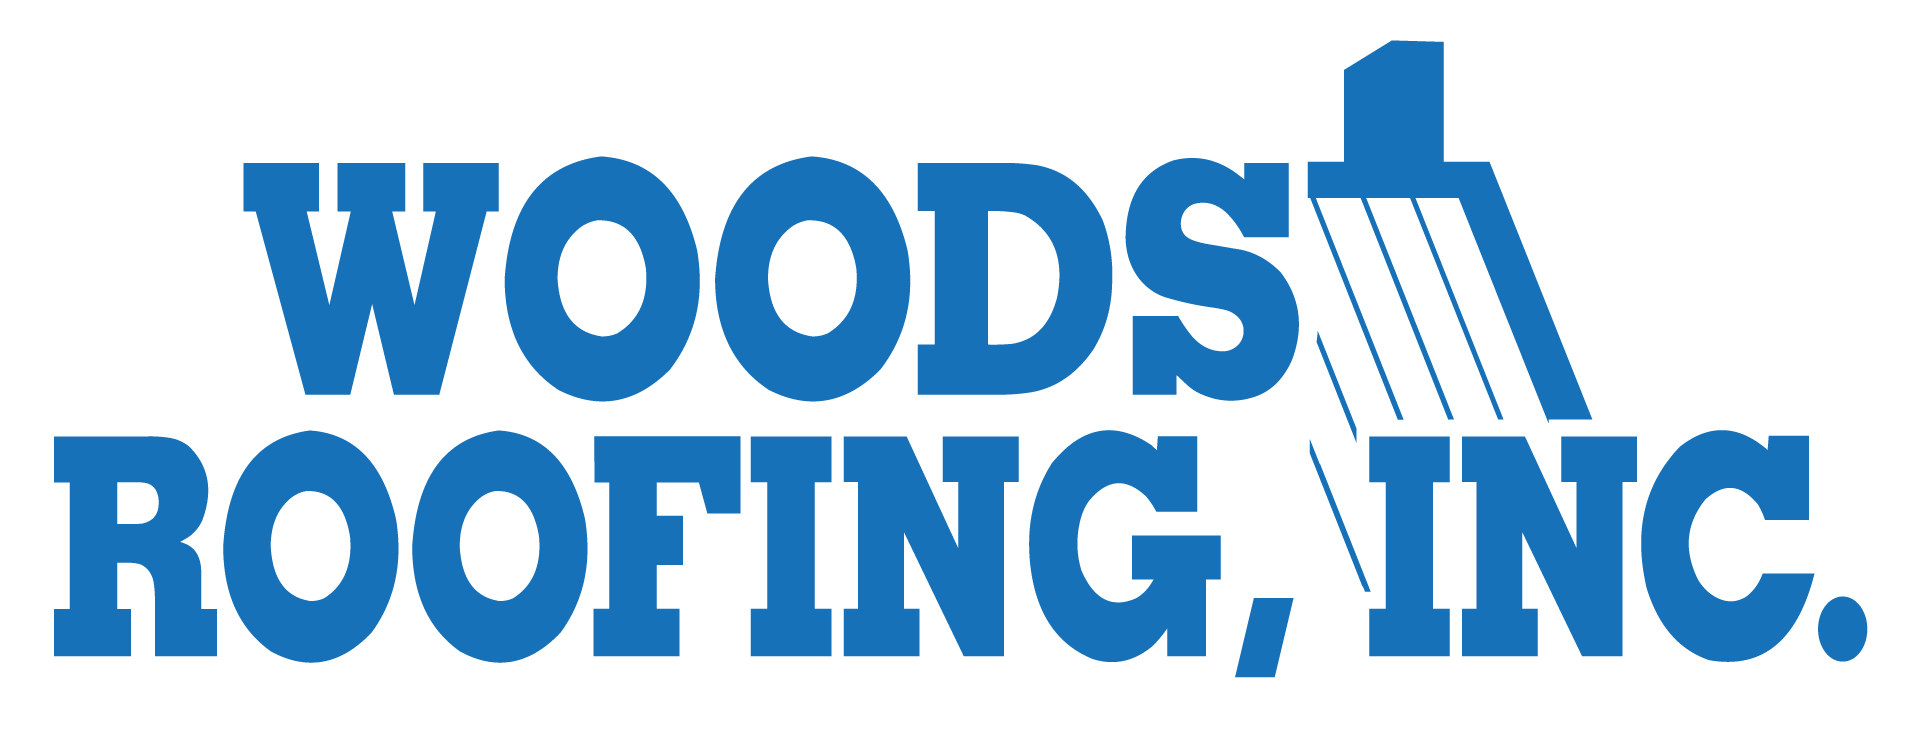 Woods Roofing, Inc.